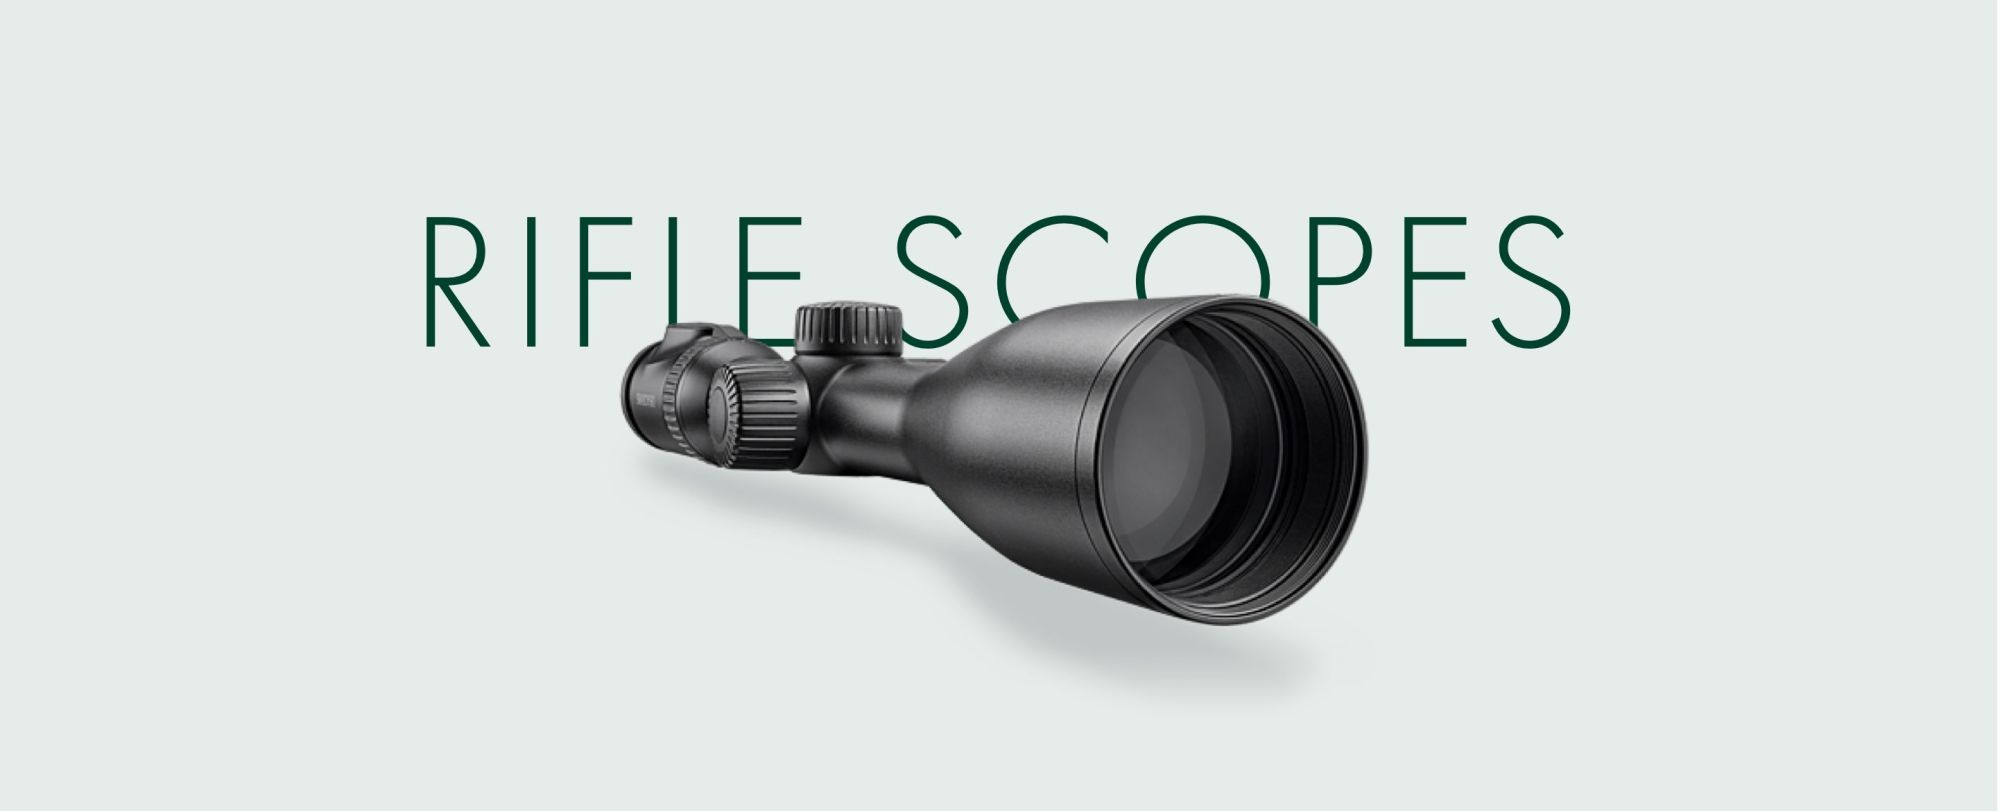 Graphic Rifle Scopes about aus company quality innovation